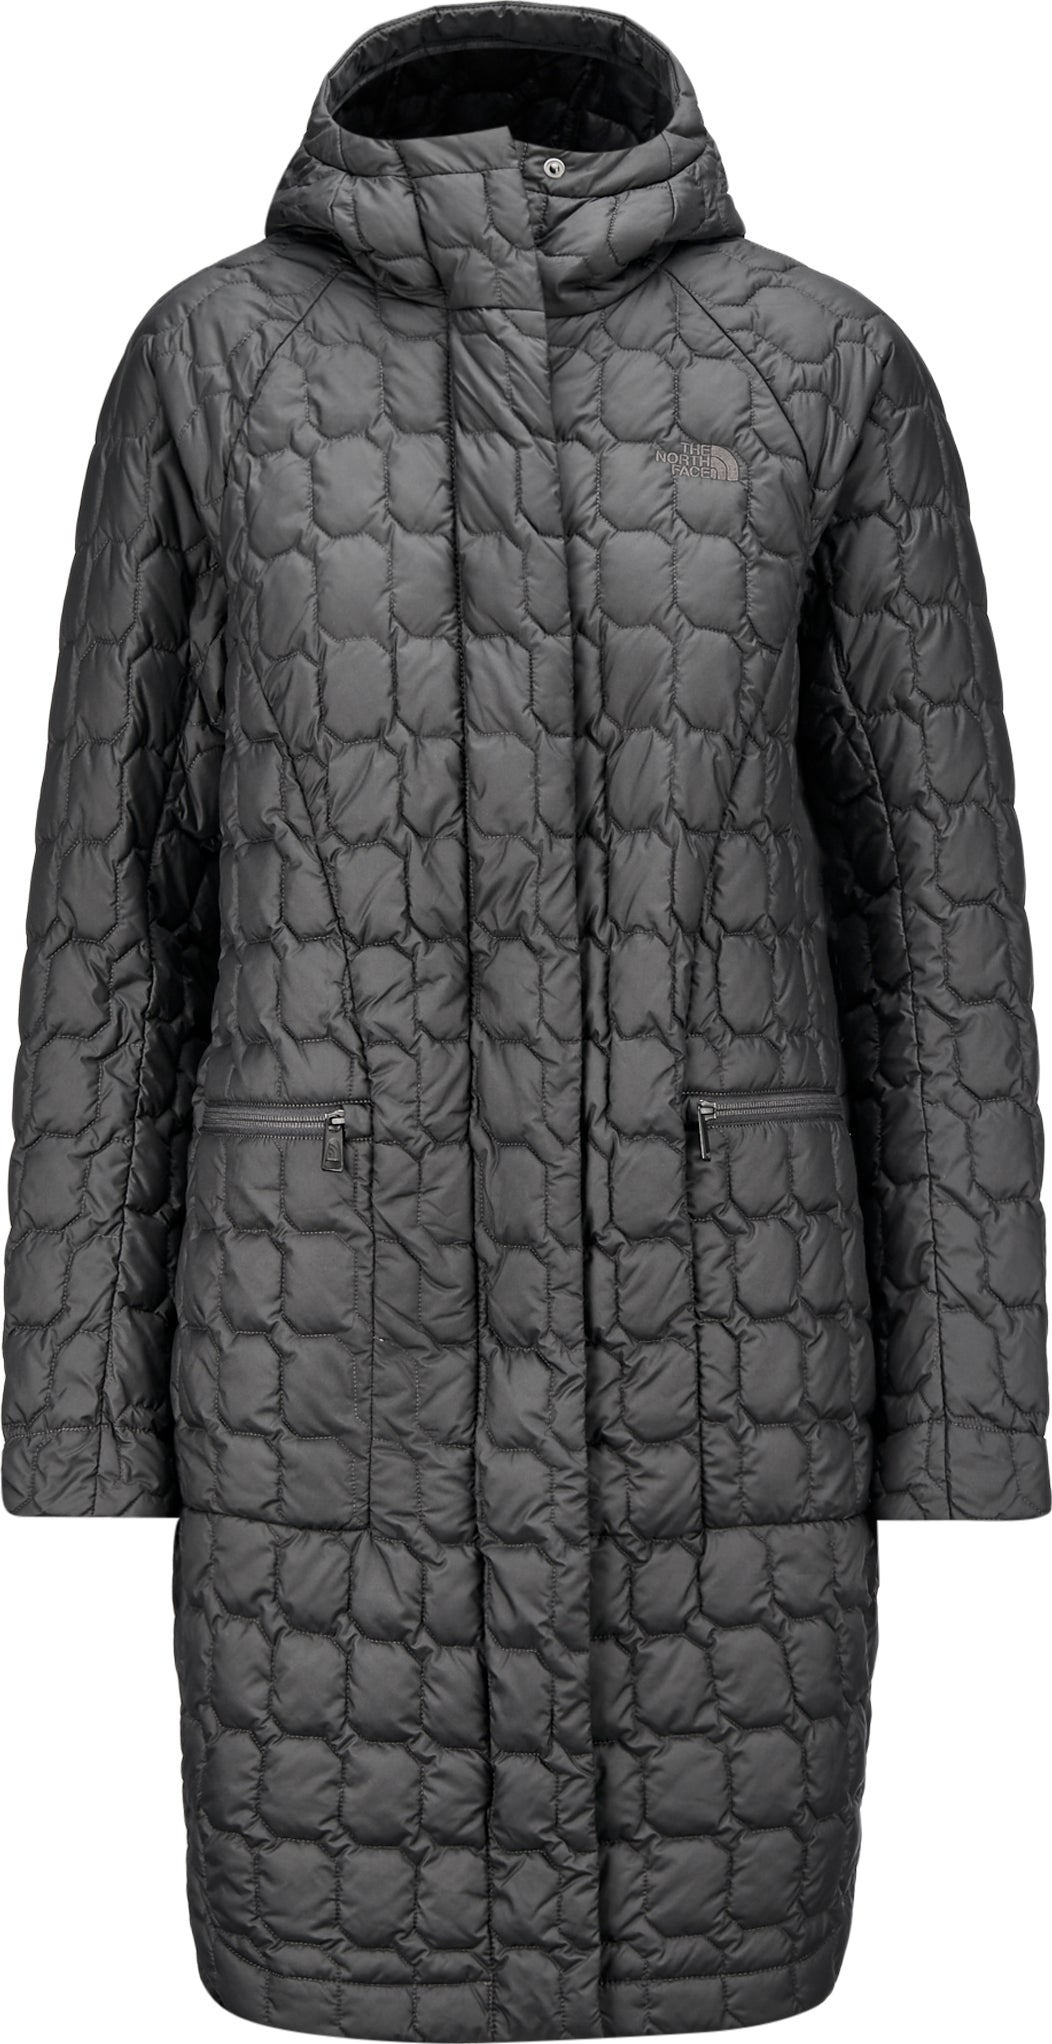 796f88a3c Thermoball™ Parka II - Women's